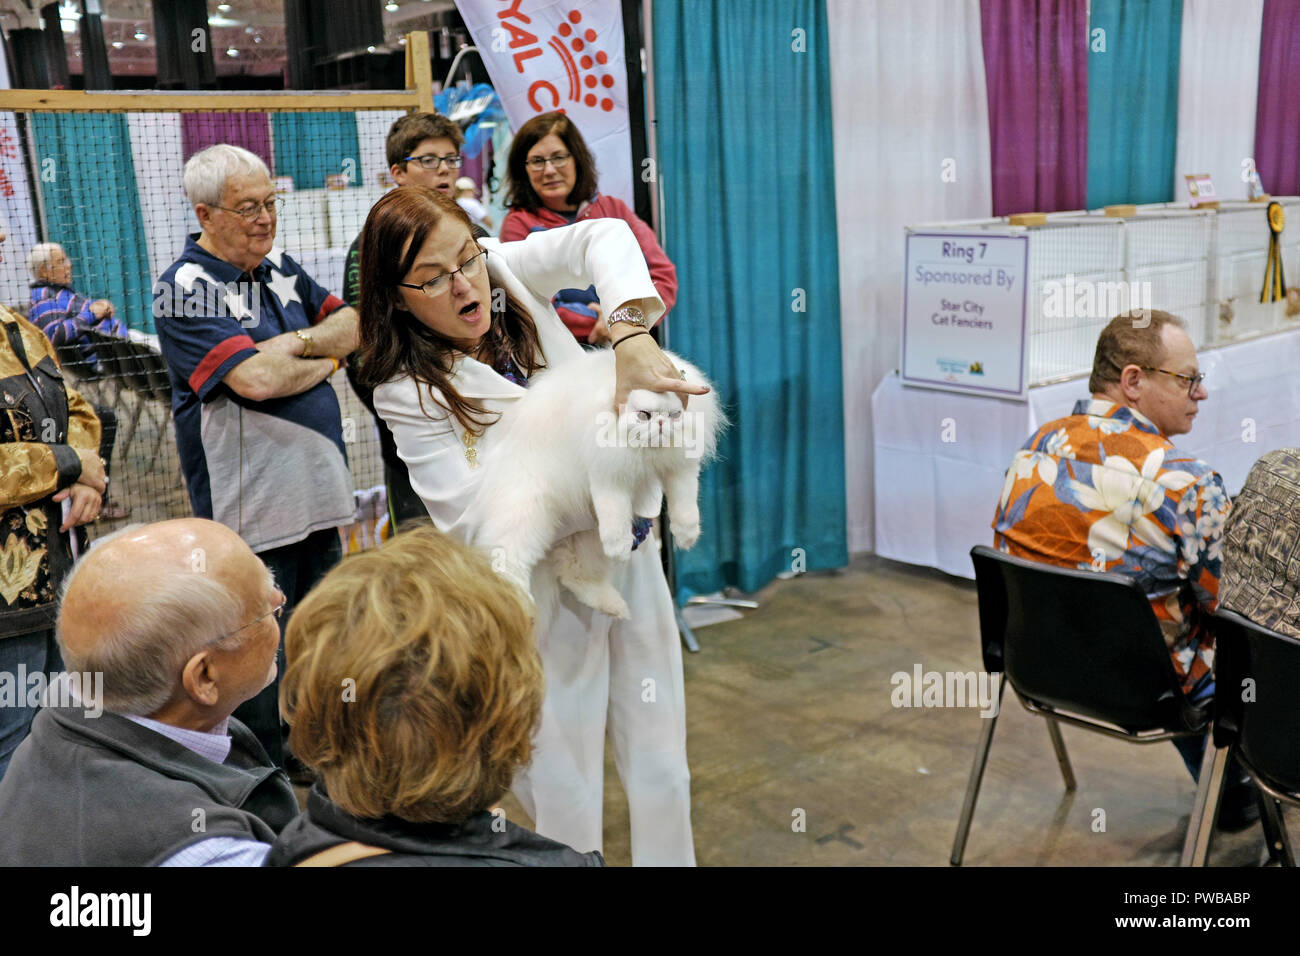 Cleveland, Ohio, USA, 15th Oct, 2018.  A judge explains to a crowd her assessment of a white Persian and why she was chosen as the winner of one of the competitions at the 2018 Cat Fanciers' Association International Cat Show in Cleveland, Ohio, USA.  The pedigreed cat show is the largest of its type in the US and operates from an 'open-style' cat judging model in which the owner of the feline, and spectators, watch the competition.  Credit: Mark Kanning/Alamy Live News. - Stock Image